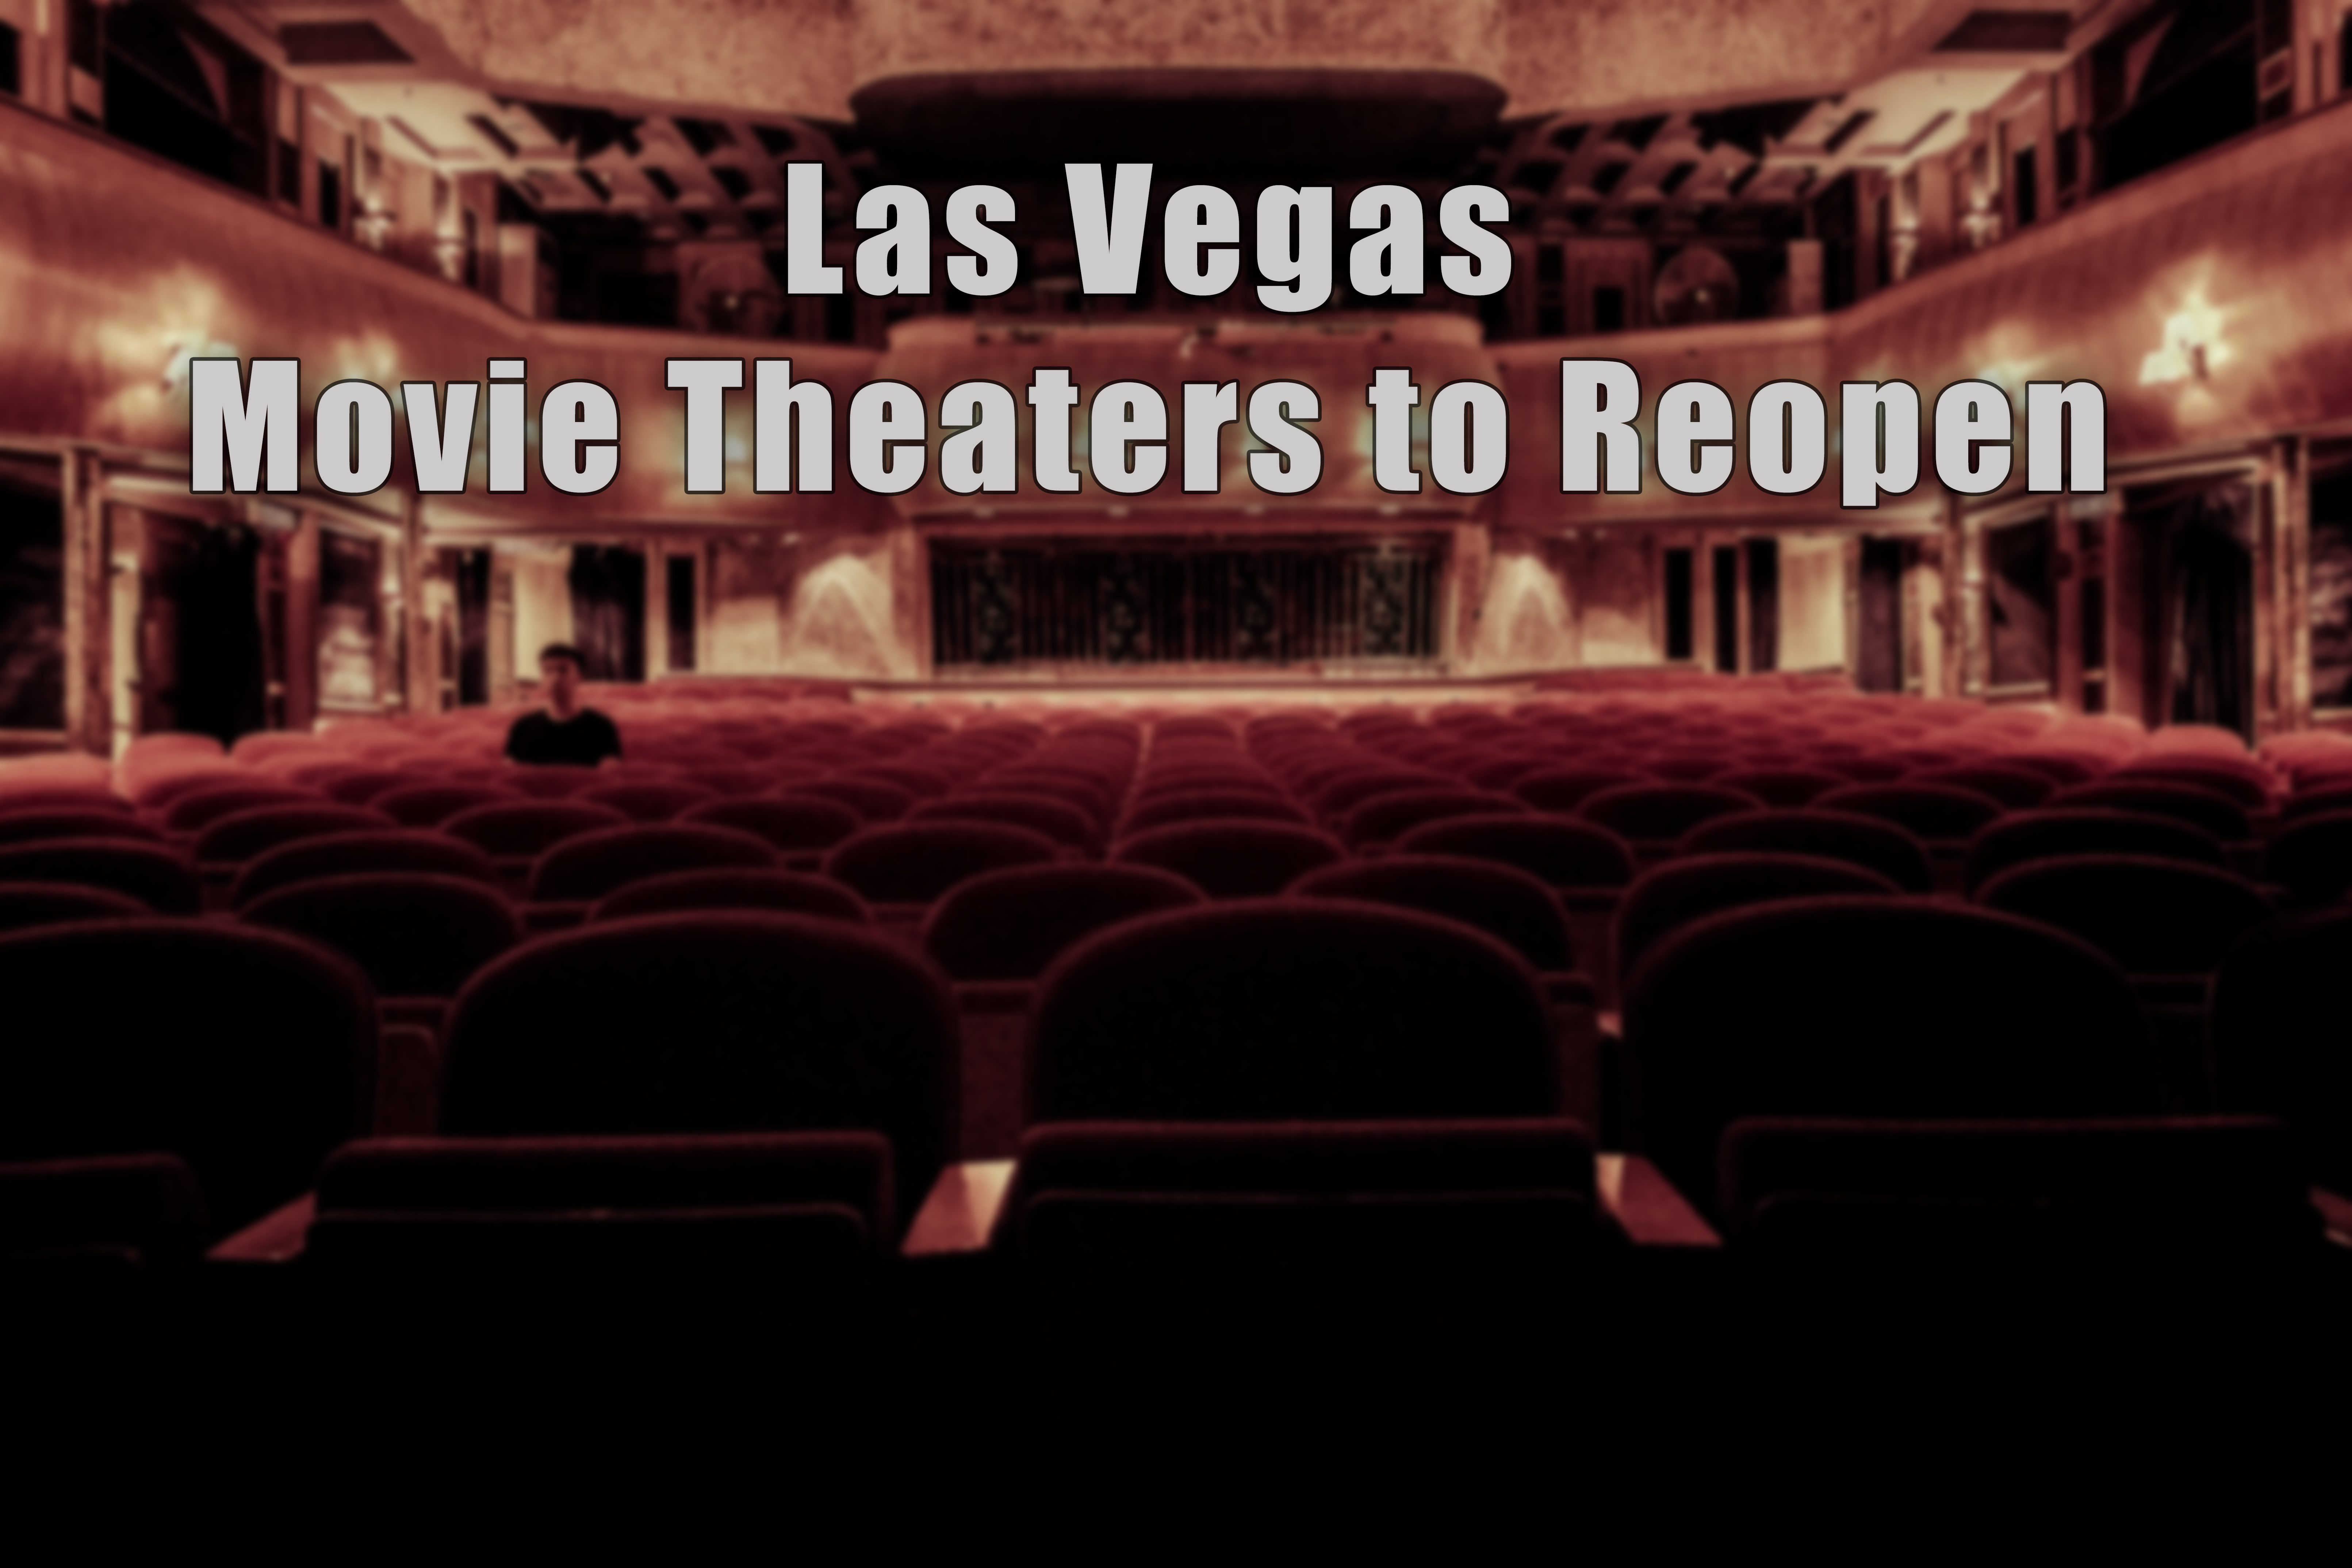 Theater in Las Vegas.jpg